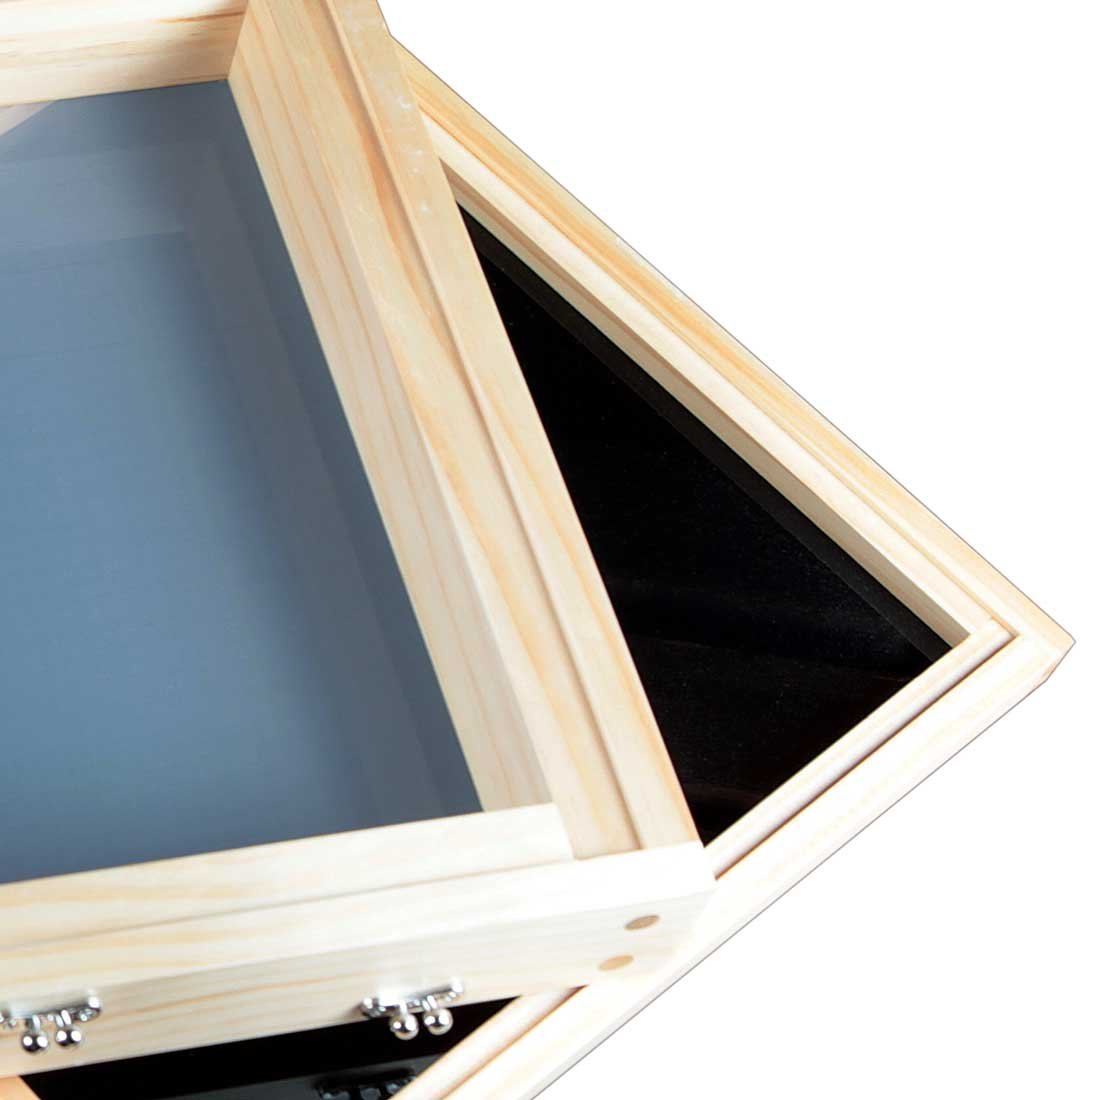 RYOT 15x15 ''Growers Box'' XL Natural Finish Wooden Pollen Sifting Box with Monofilament Screen by RYOT (Image #6)